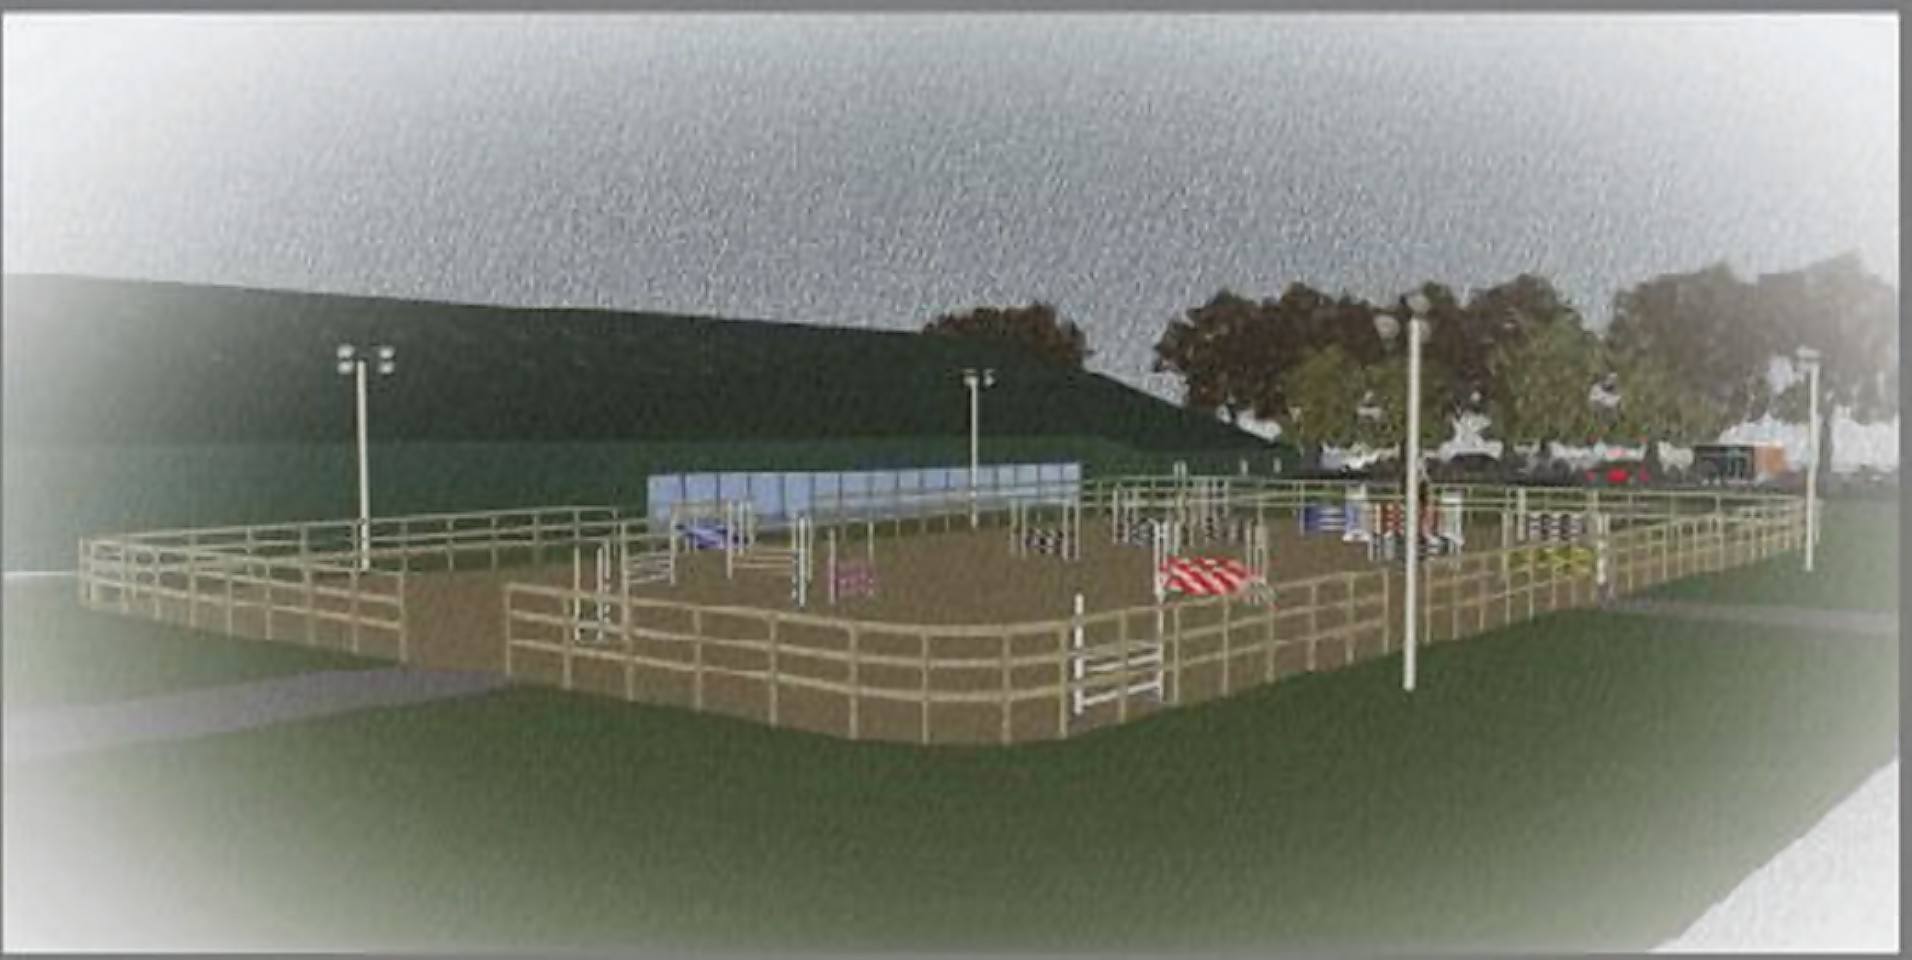 An artists impression of Aberdeen Riding Club's new riding school